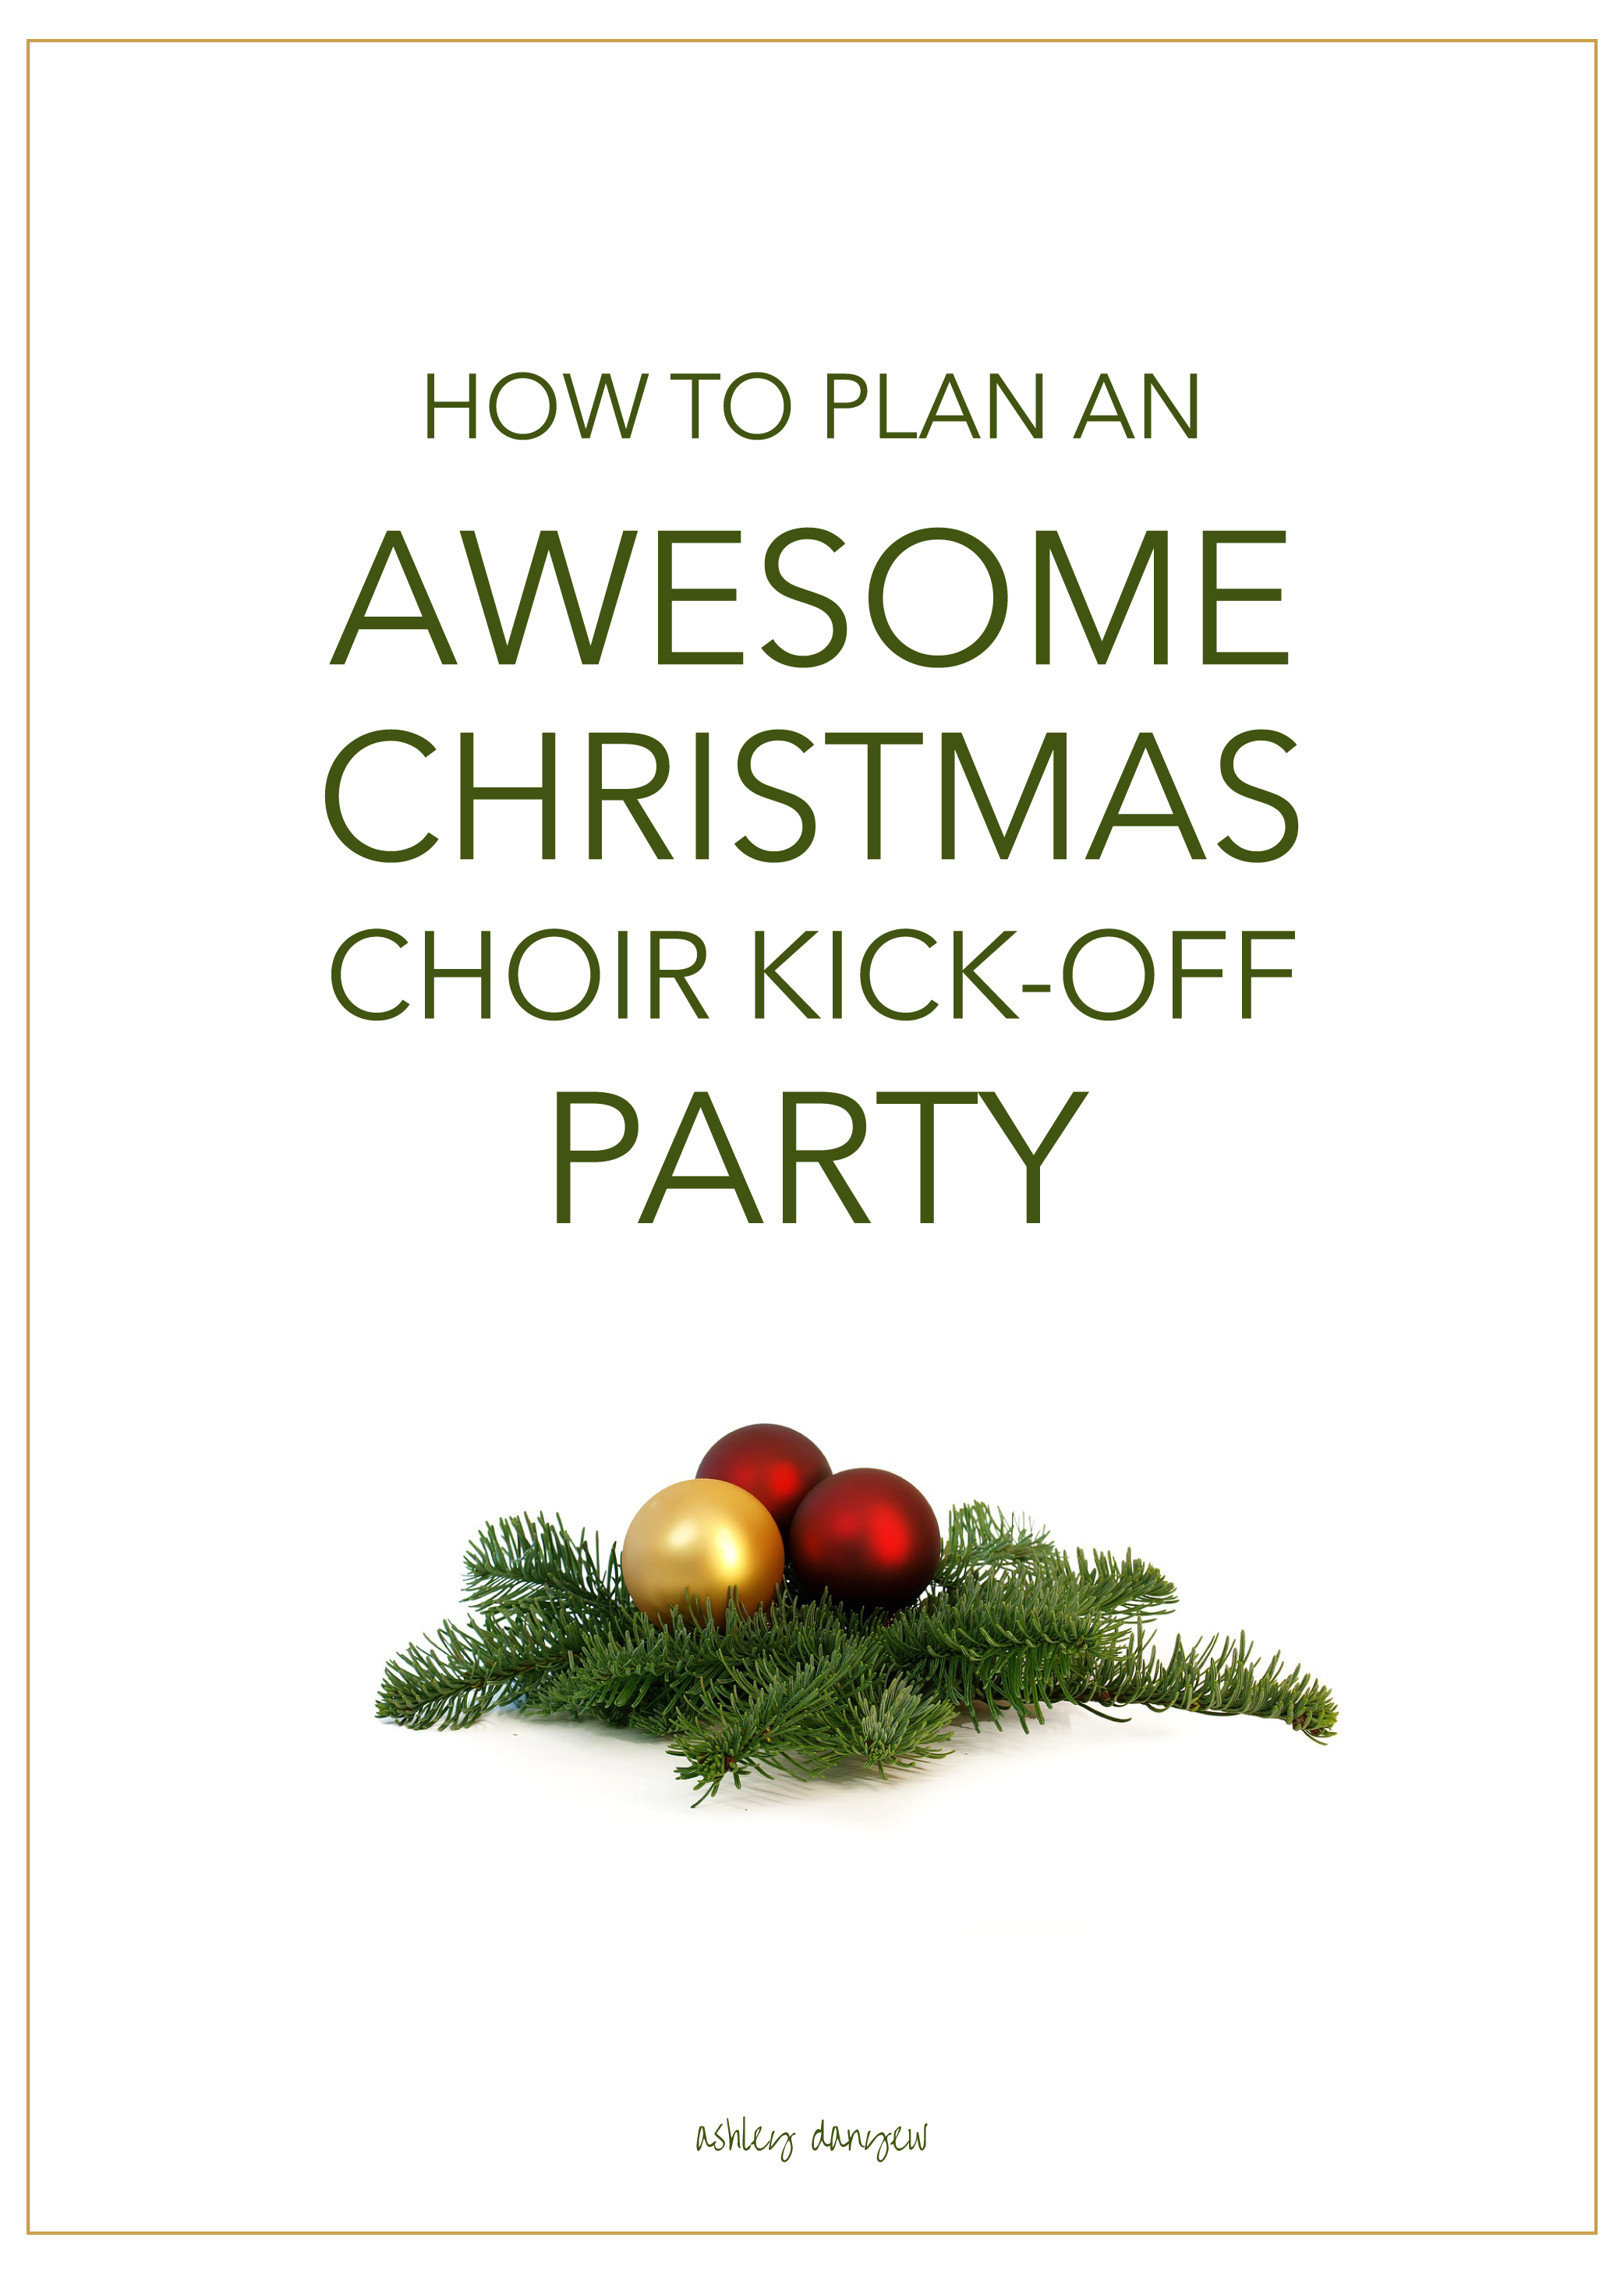 How-to-Plan-an-Awesome-Christmas-Choir-Kick-Off-Party-01.png